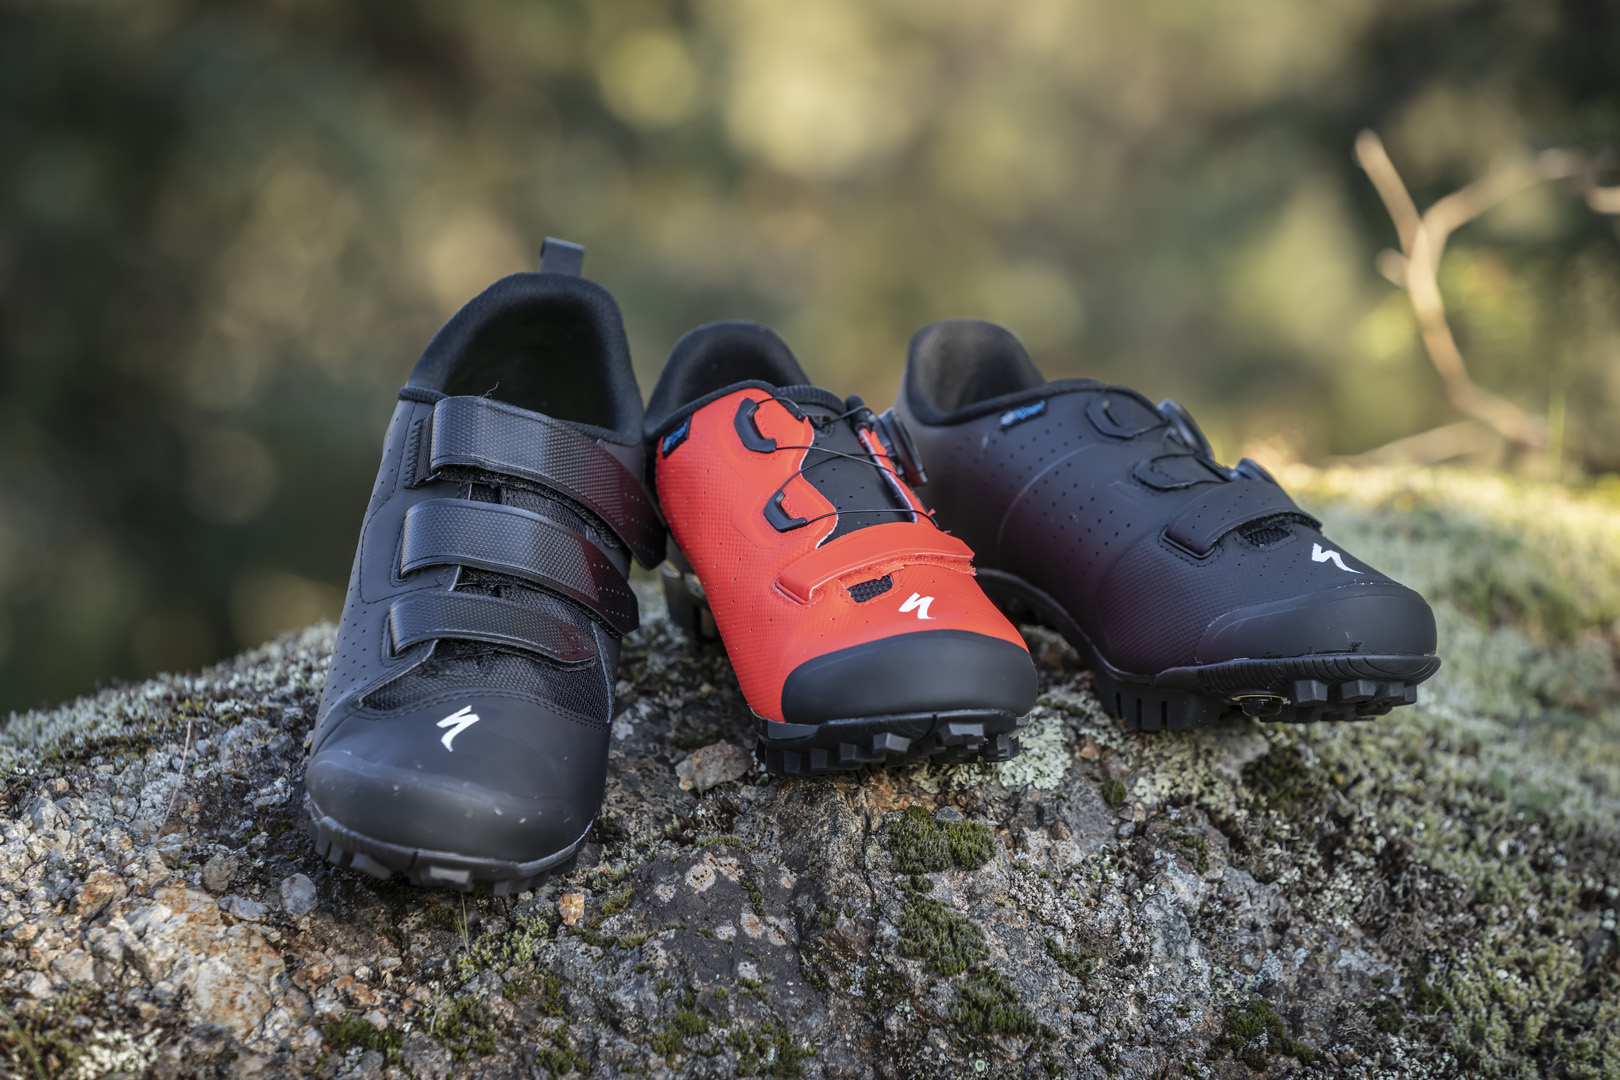 Check out the new Specialized Recon clipless shoe range - MBR